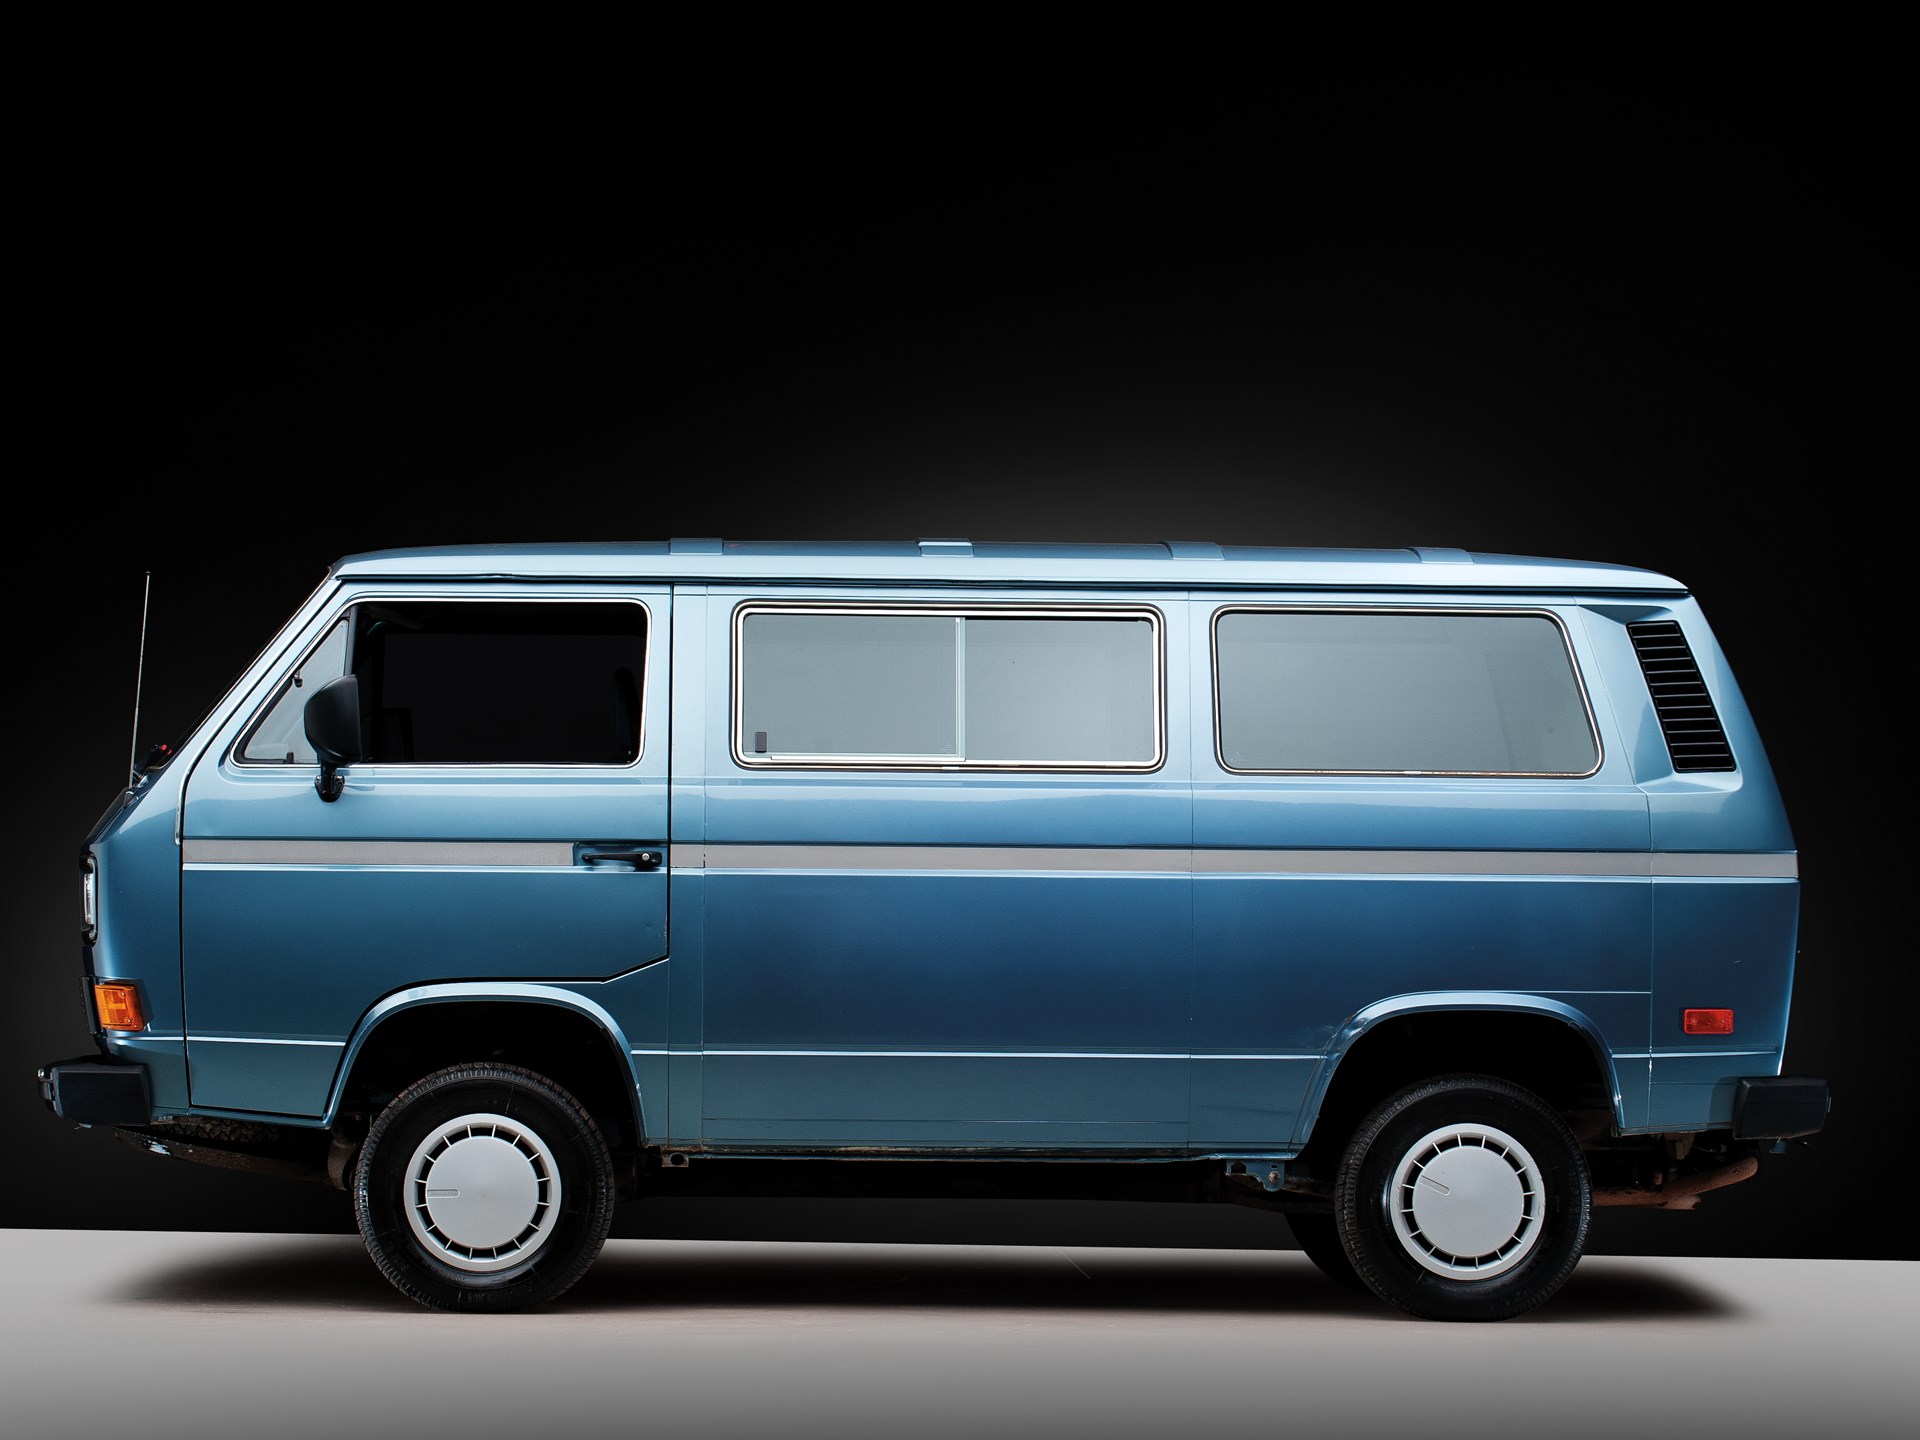 RM Sotheby's - 1986 Volkswagen Vanagon GL Syncro | The